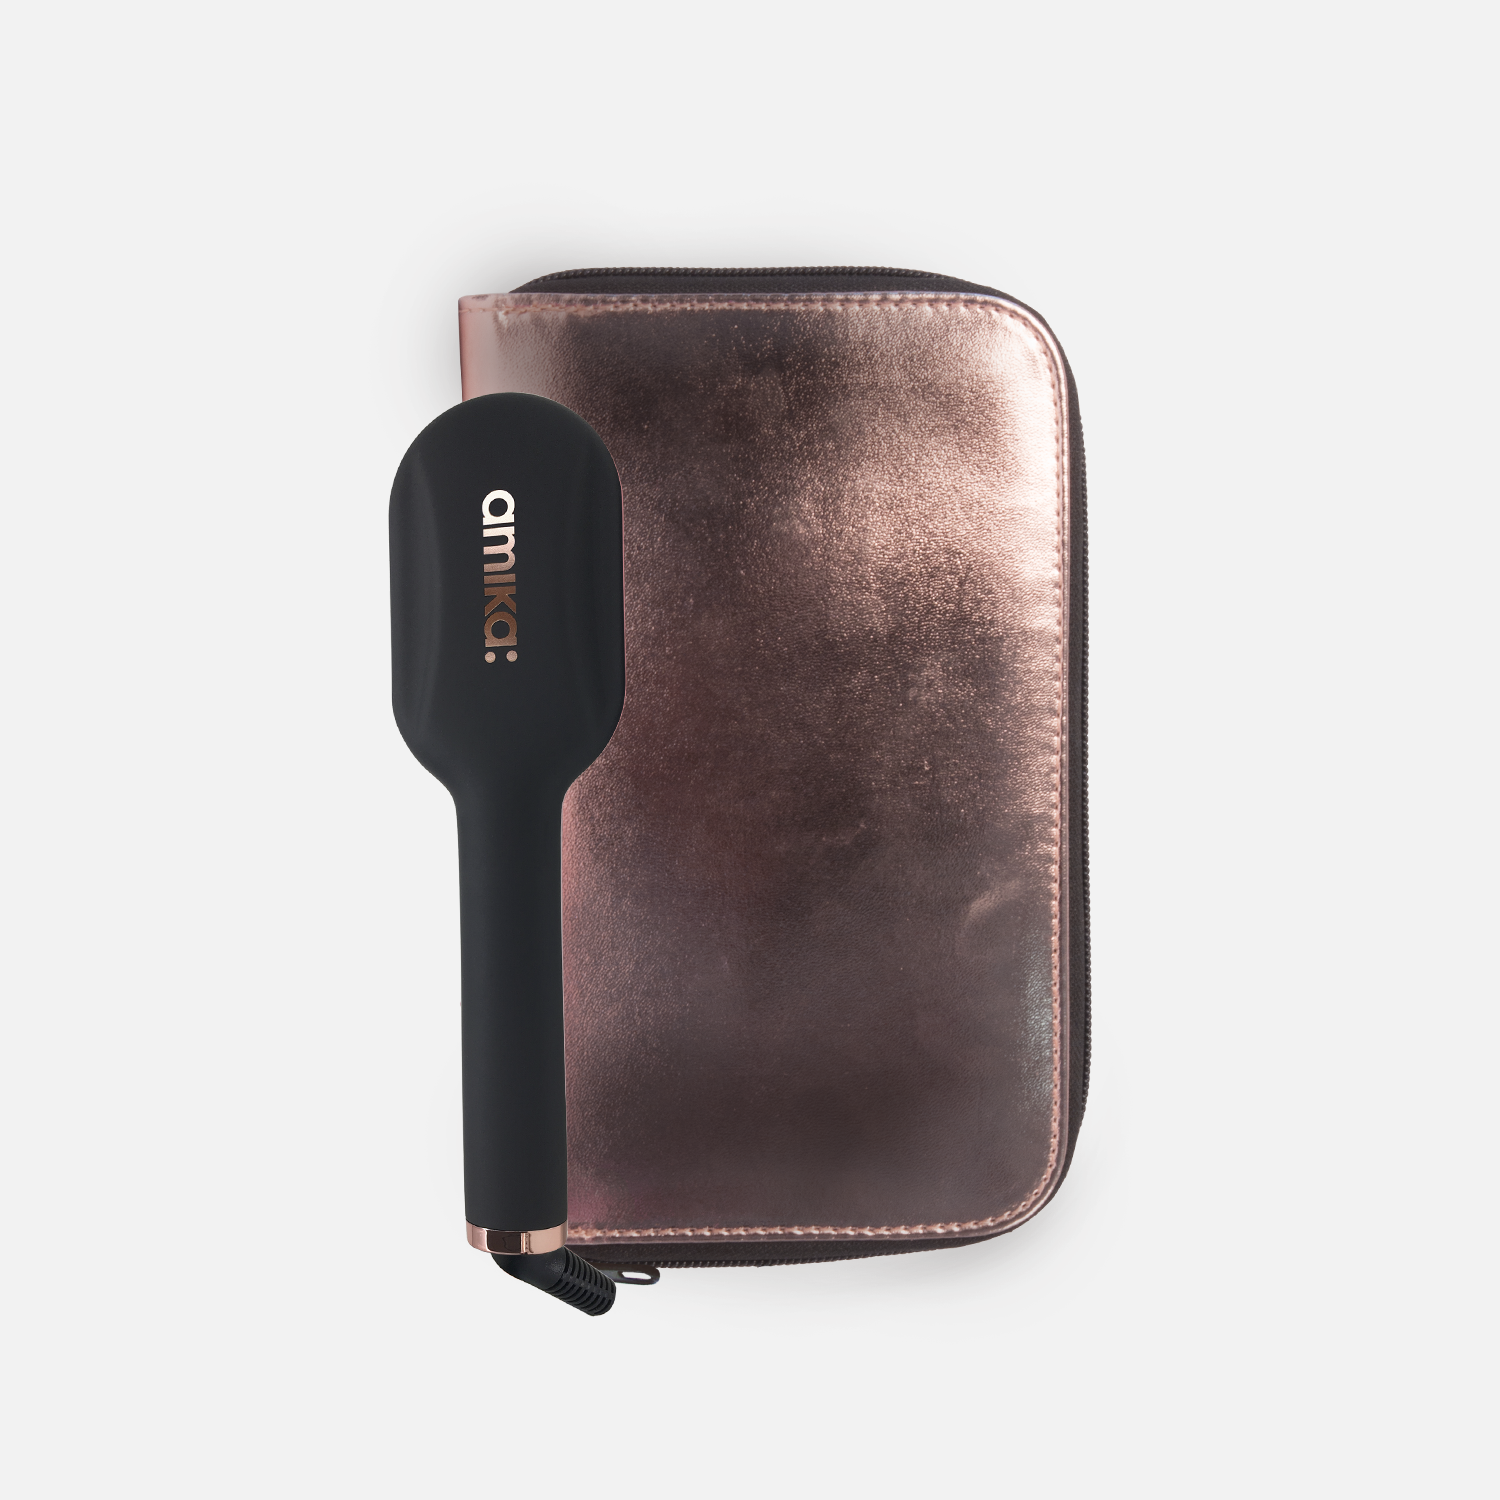 polished perfection mini <span> straightening brush - rose gold bag